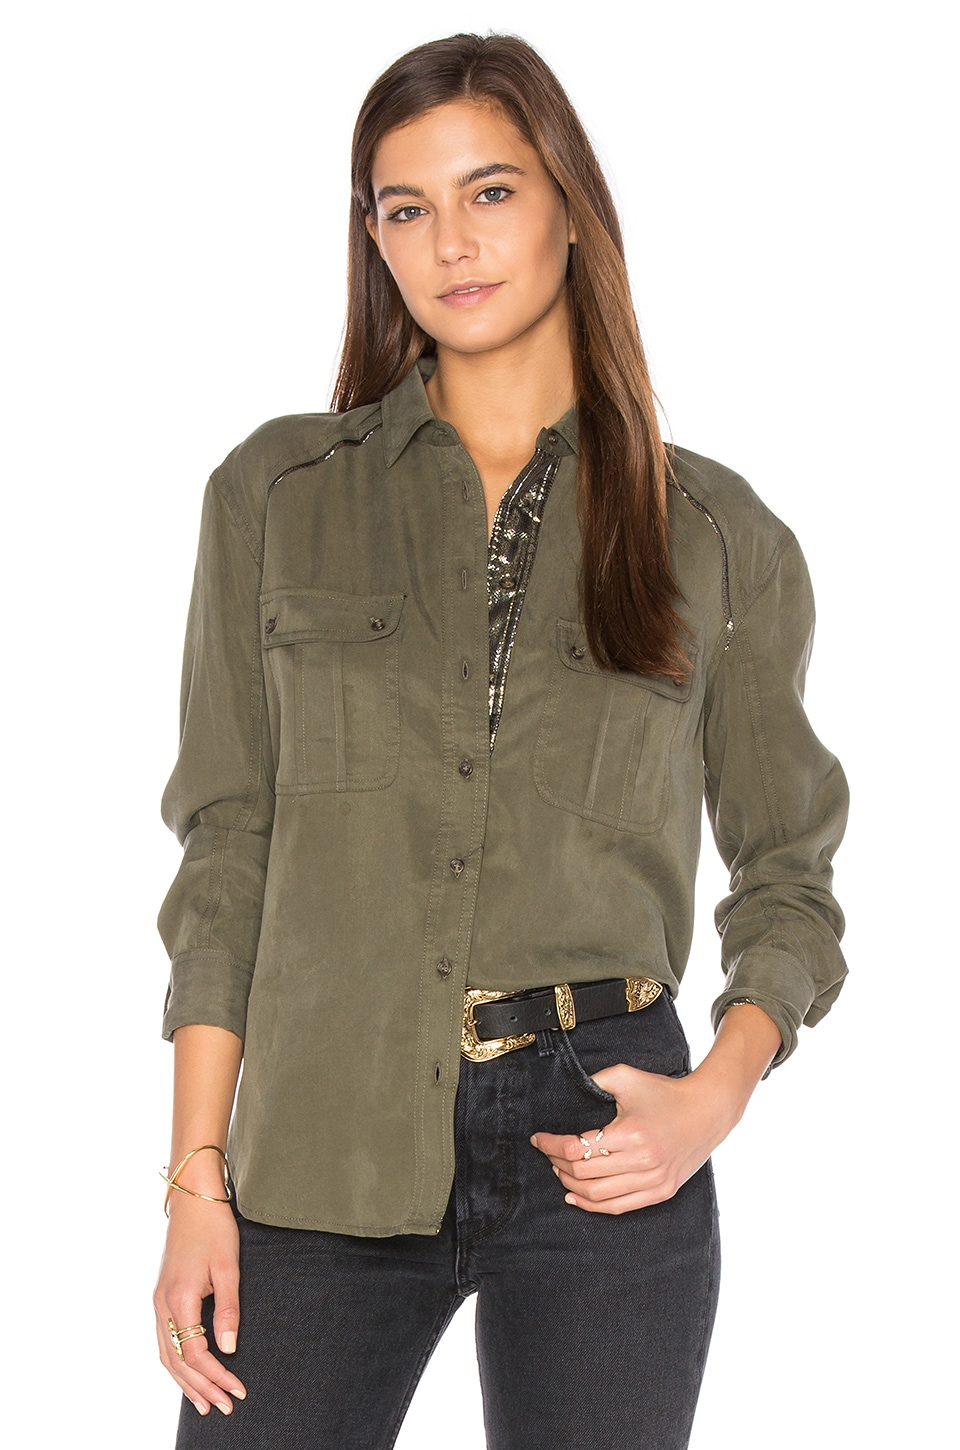 Off Campus Button Down Top